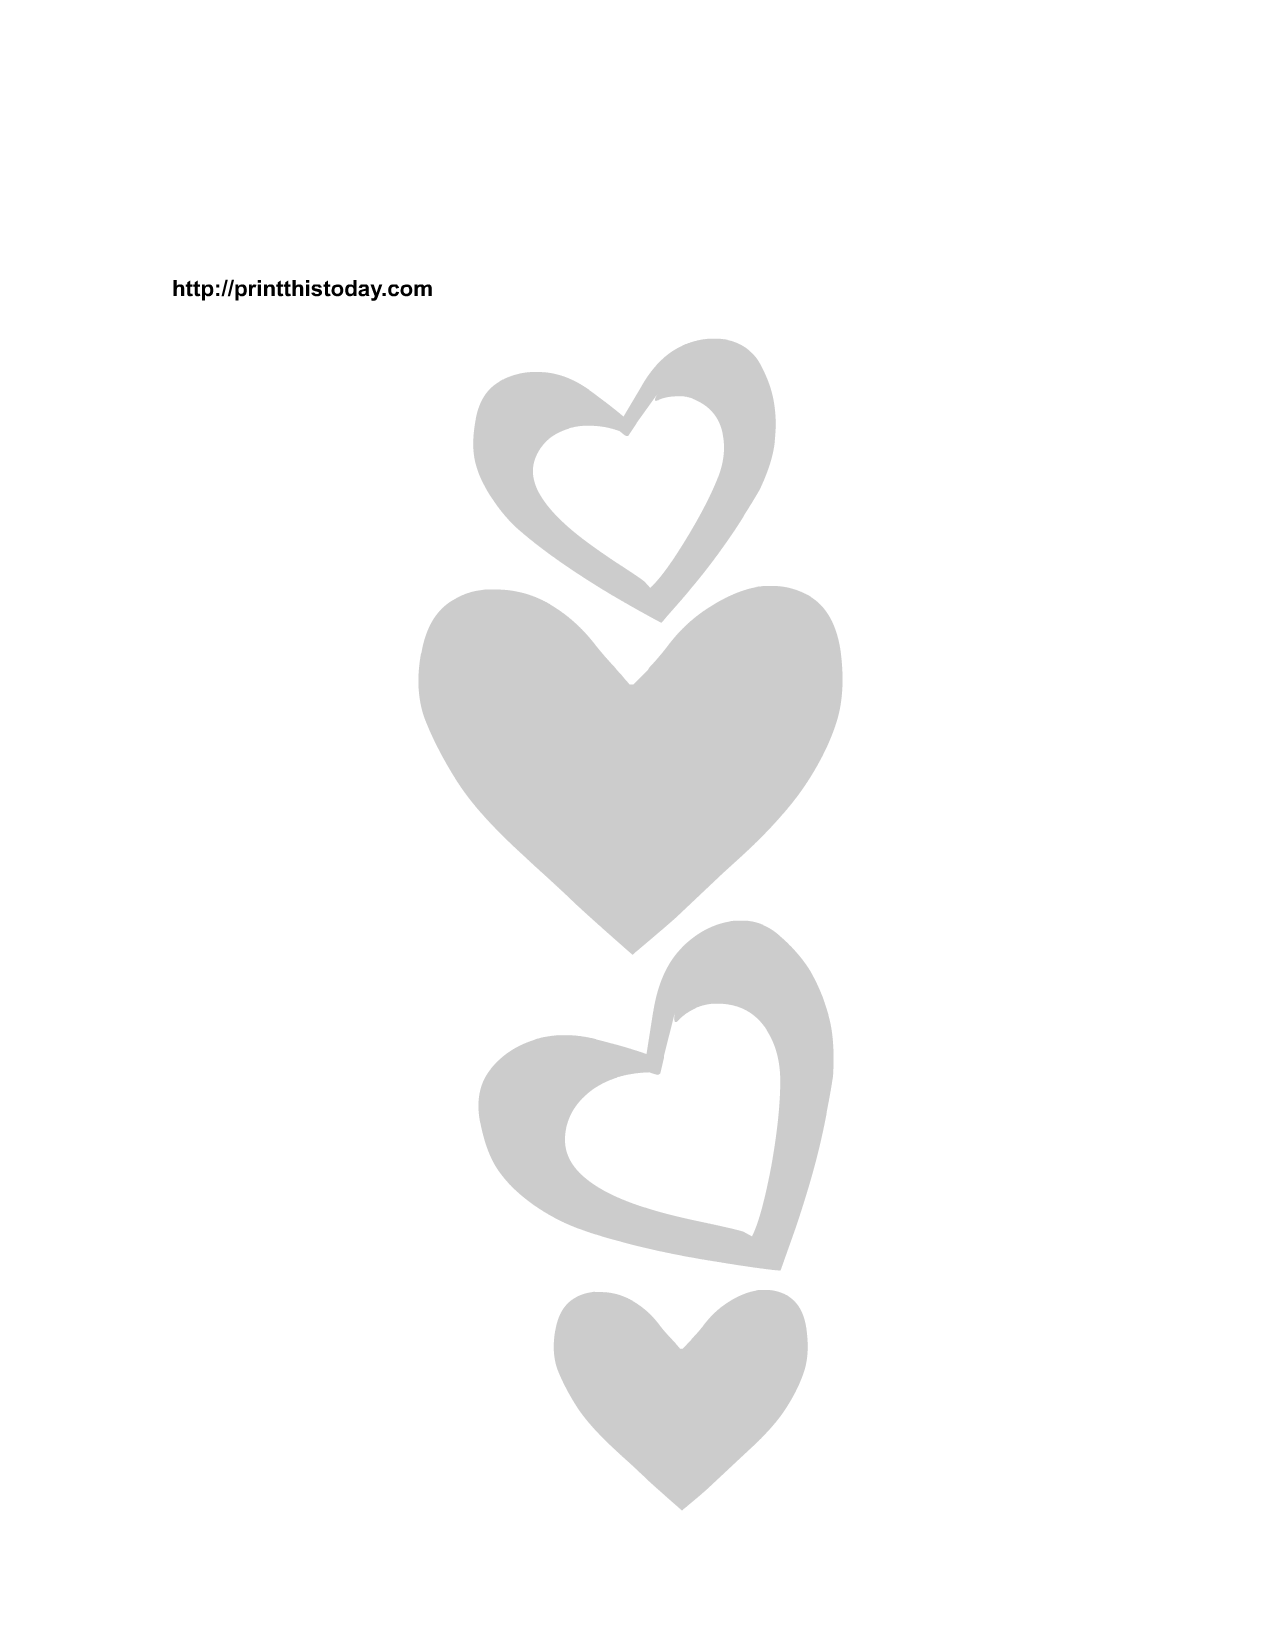 image relating to Printable Heart Stencils referred to as Free of charge Printable Hearts Stencils